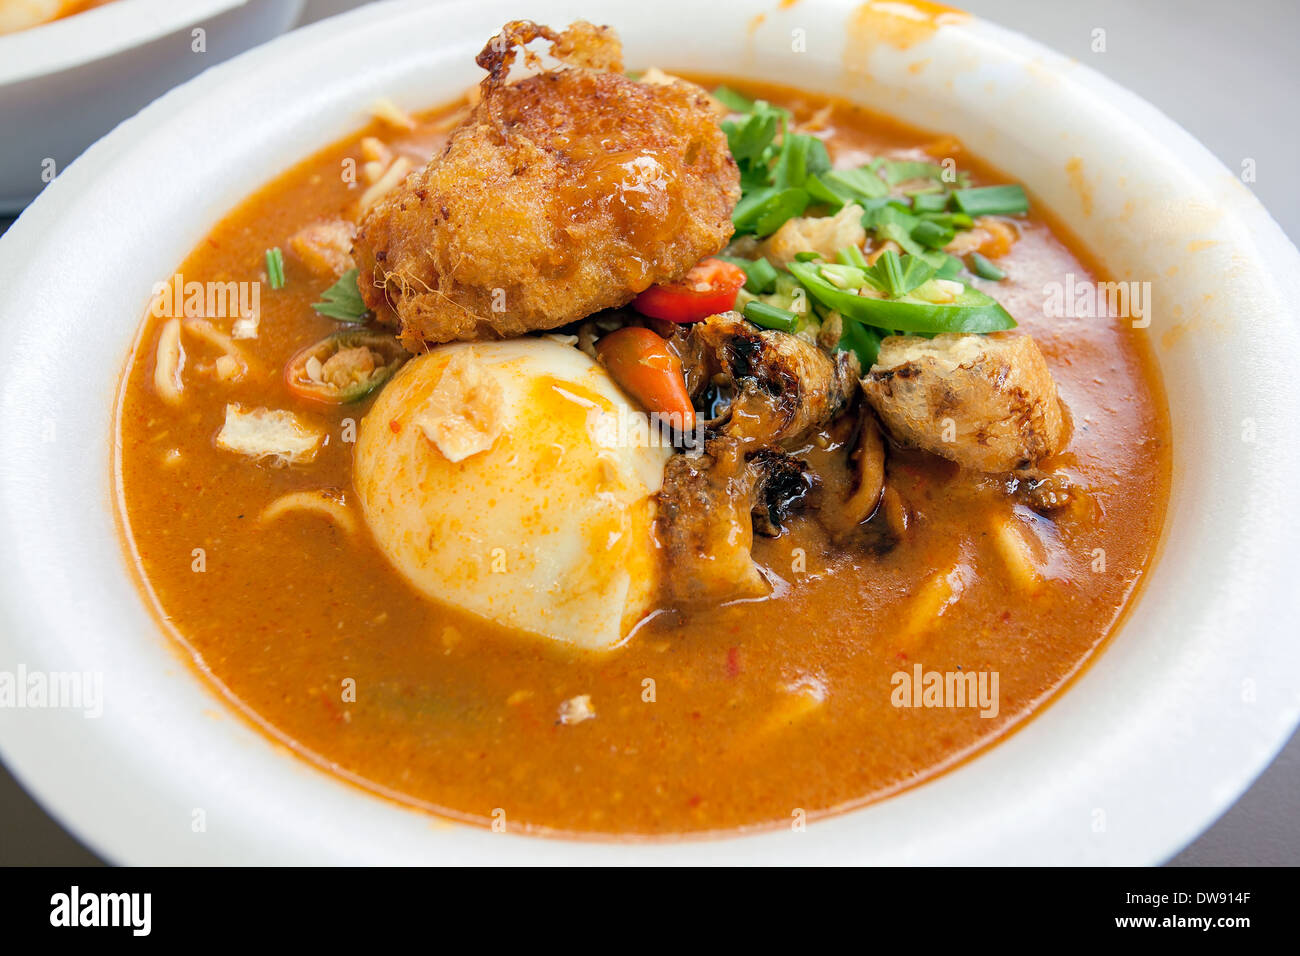 Mee Rebus Malay Local Noodle Dish with Hard Boiled Egg Fried Tofu Cut Chili Peppers and Potato Cake - Stock Image